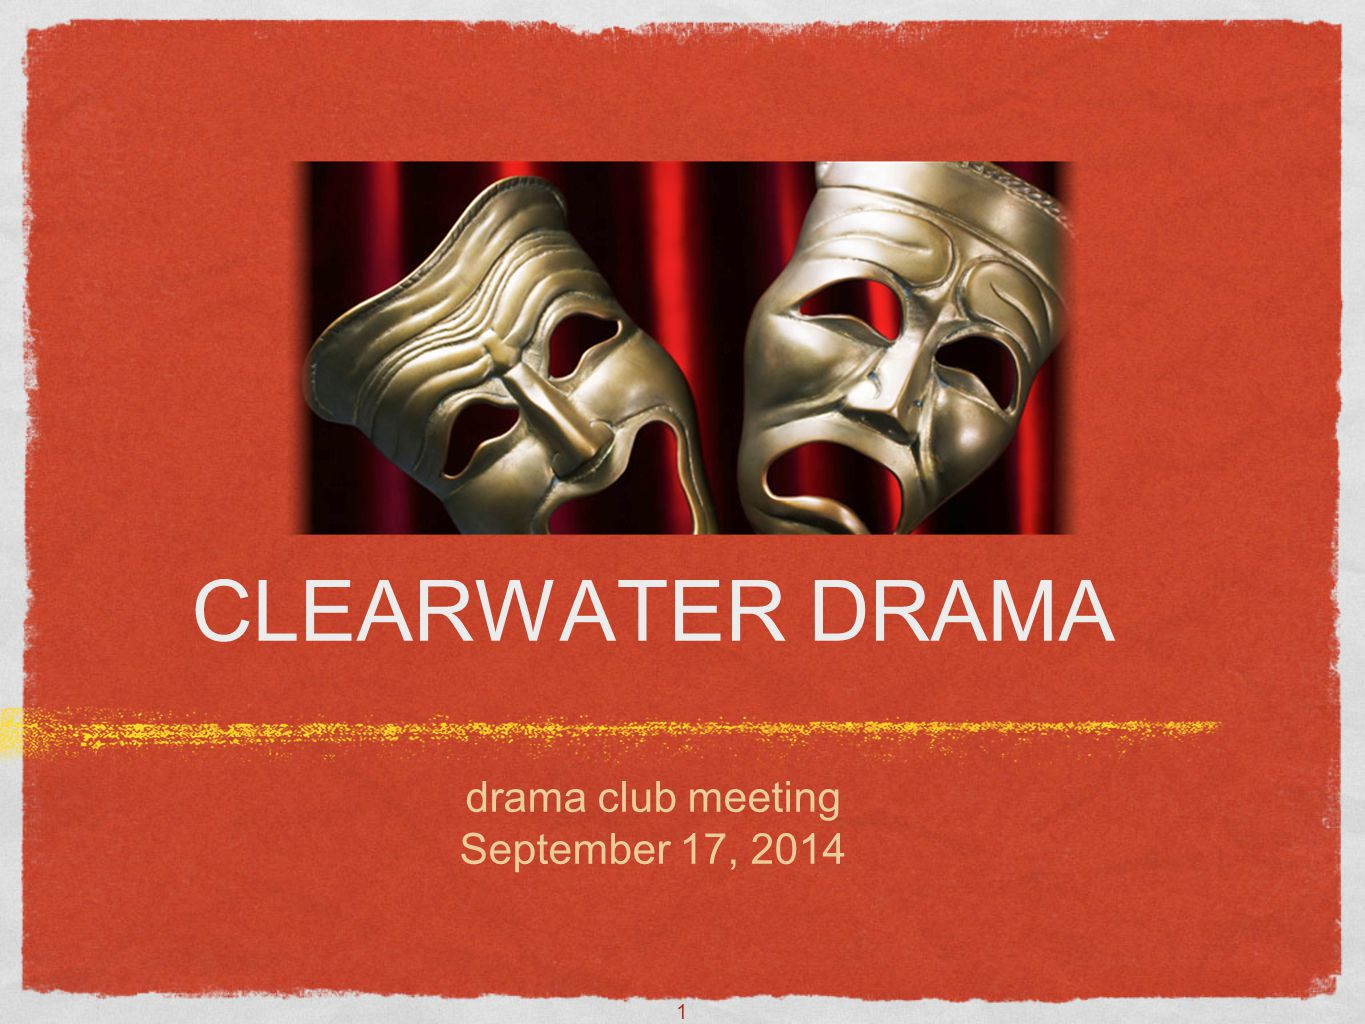 1 CLEARWATER DRAMA drama club meeting September 17, 2014 Text